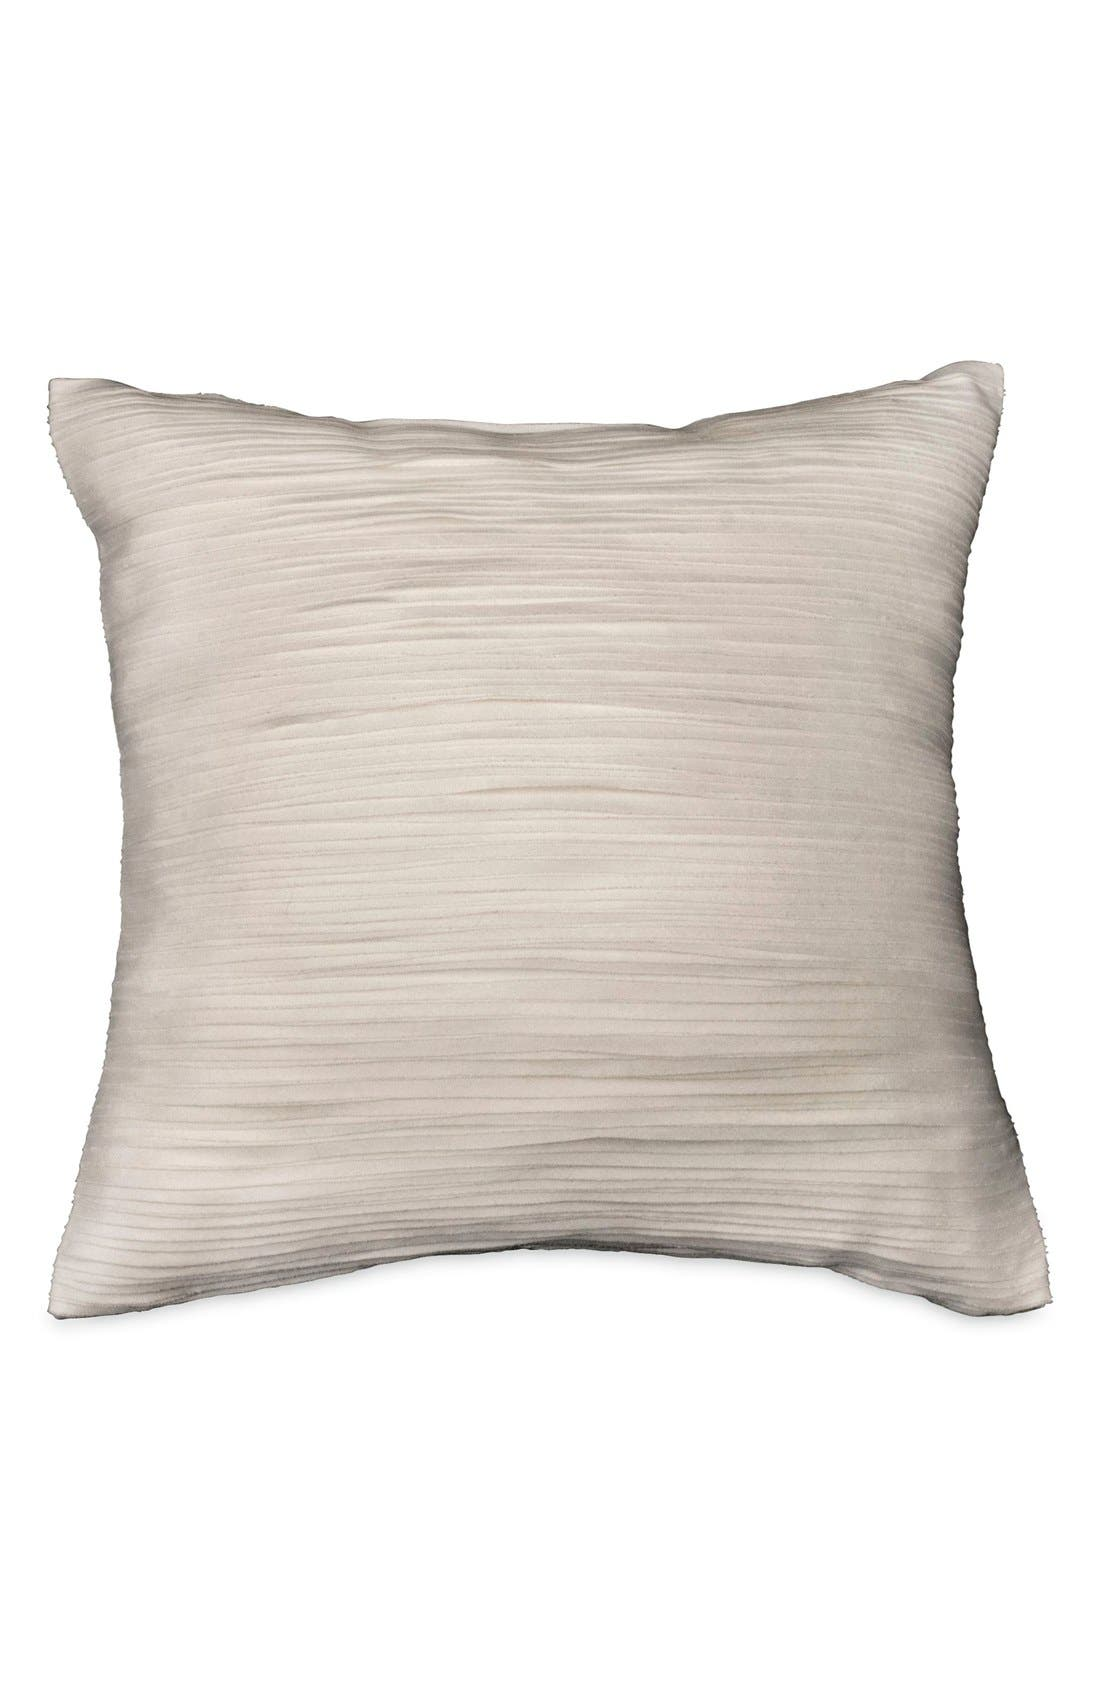 Donna Karan Collection 'Silk Essentials' Pillow,                         Main,                         color, Platinum